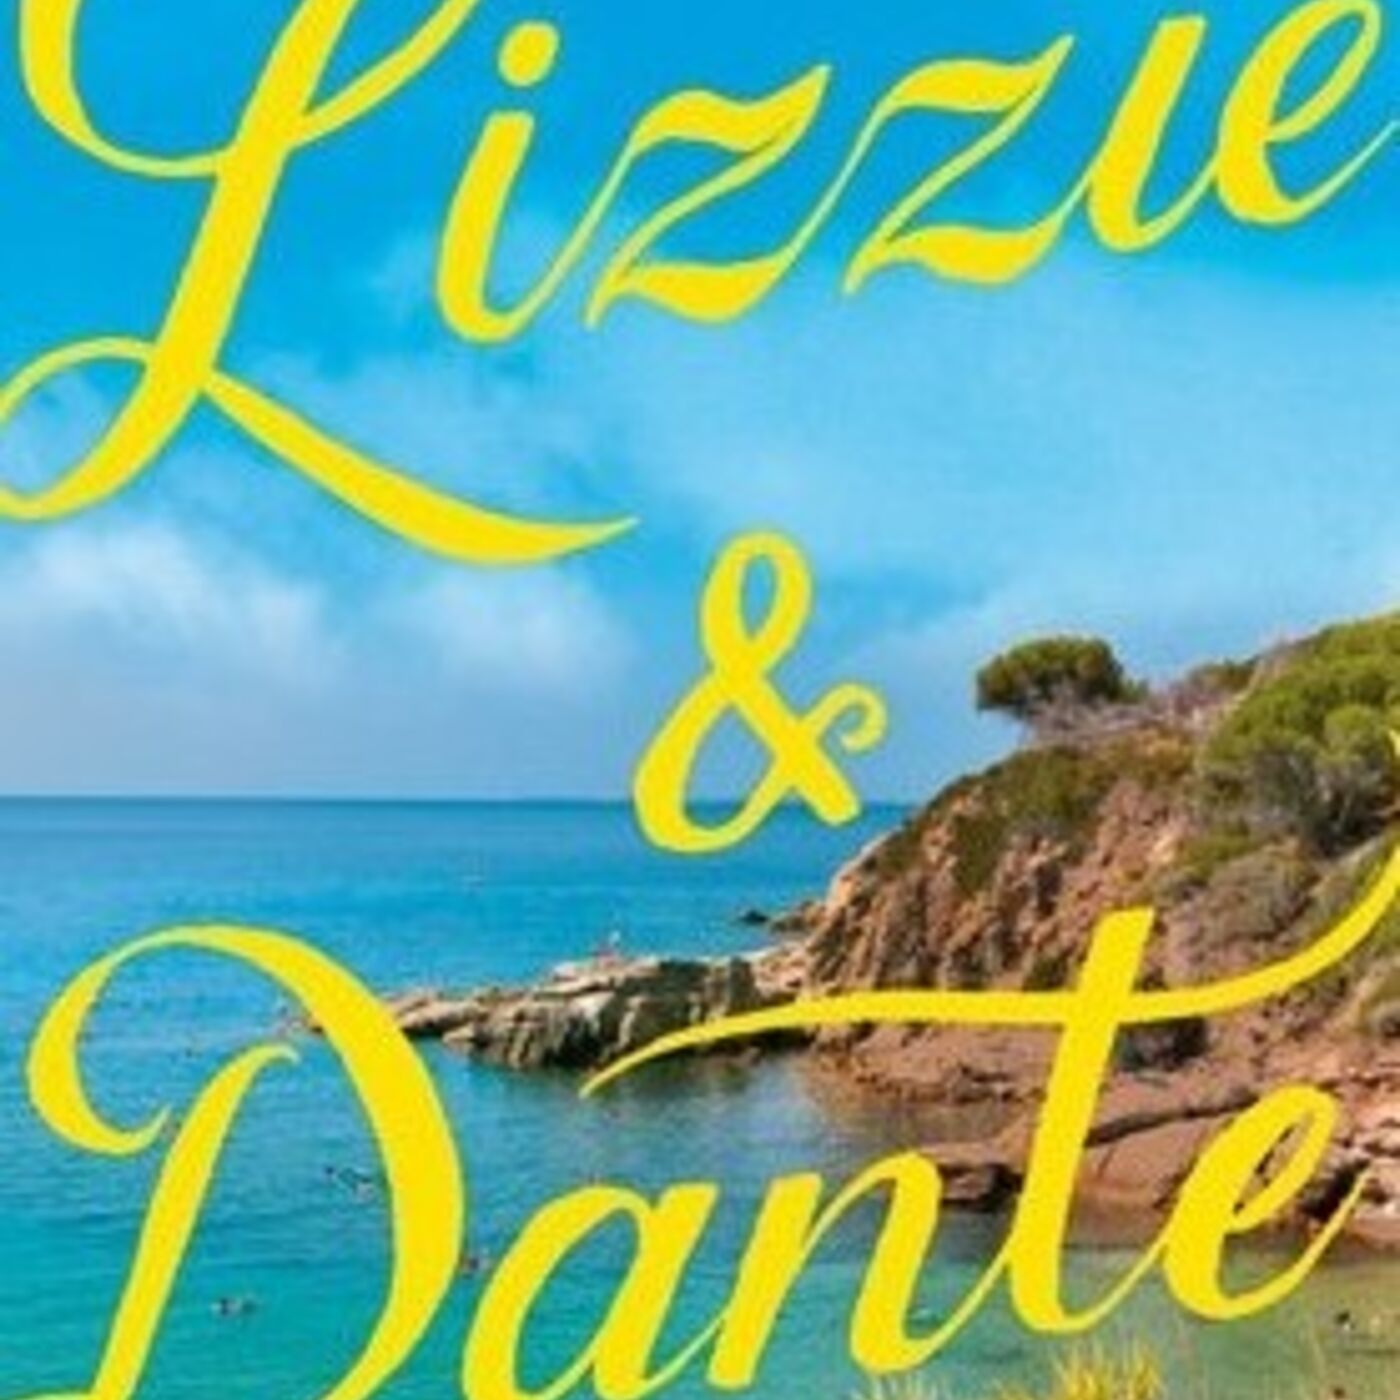 S2:E6: Mary Bly on Lizzie & Dante and Romeo & Juliet